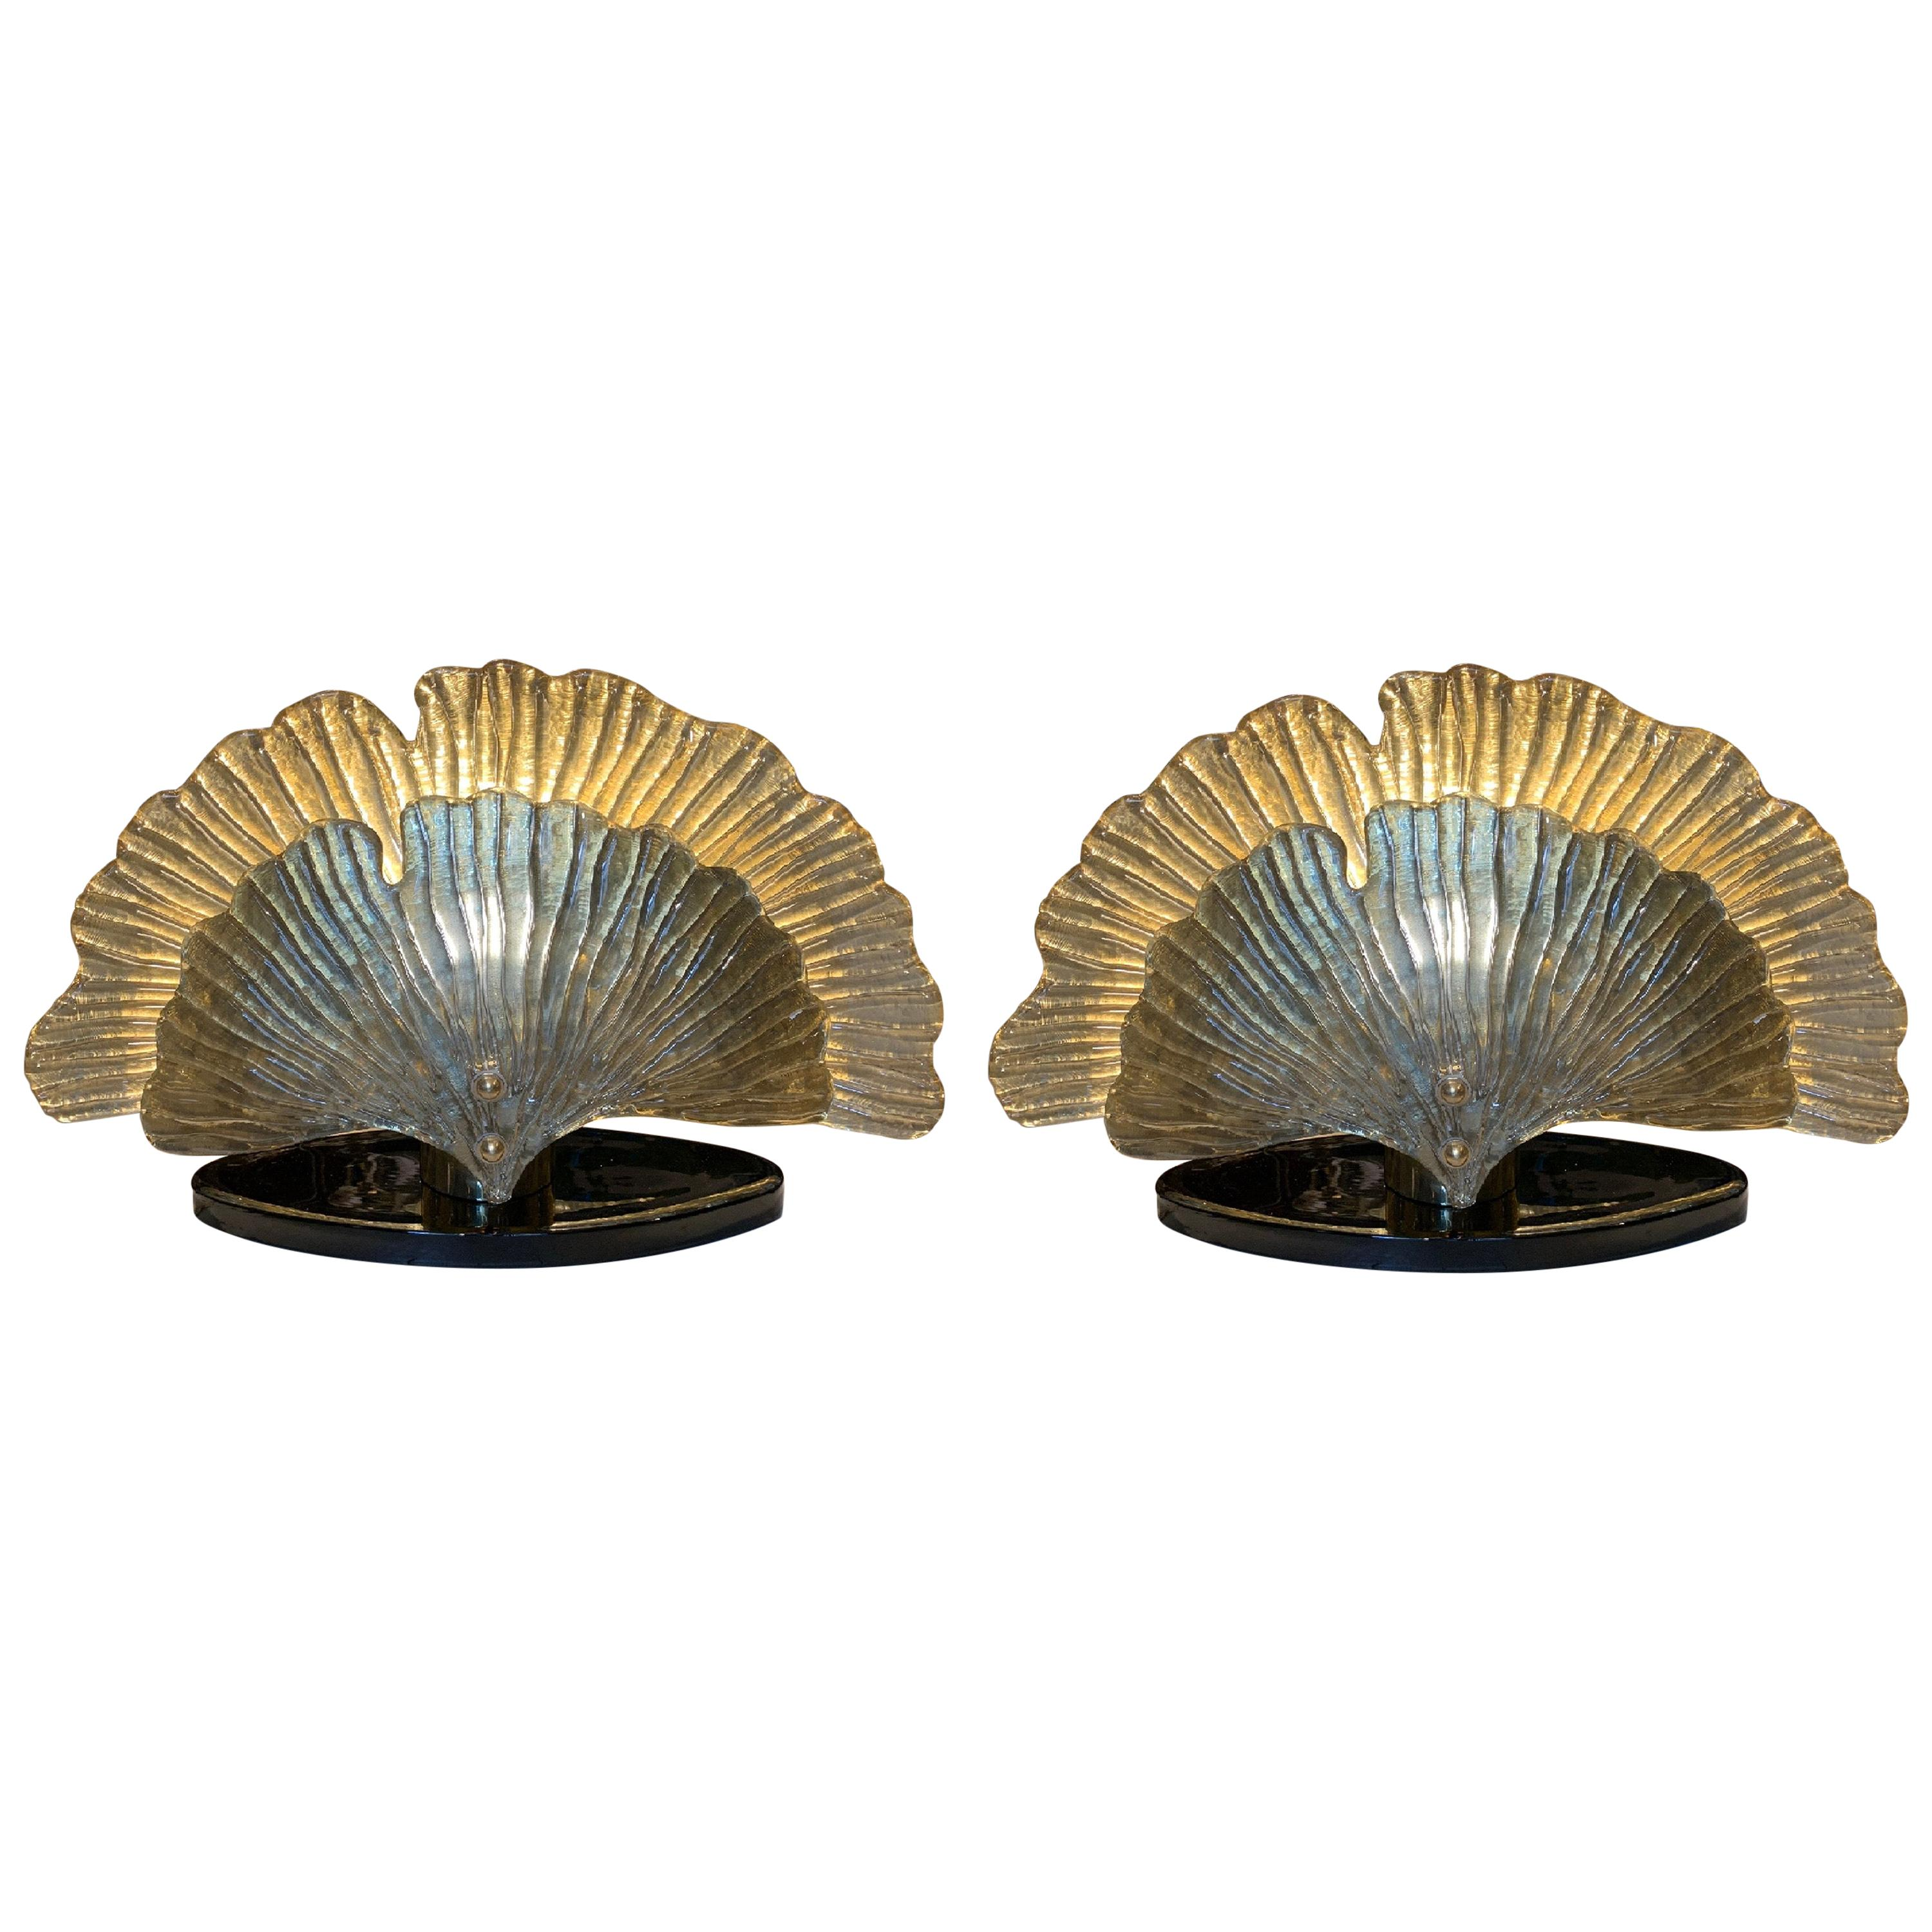 Pair of Italian Mirrored Murano Glass Table Lamps Ginkgo Leaves Shape, 1980s